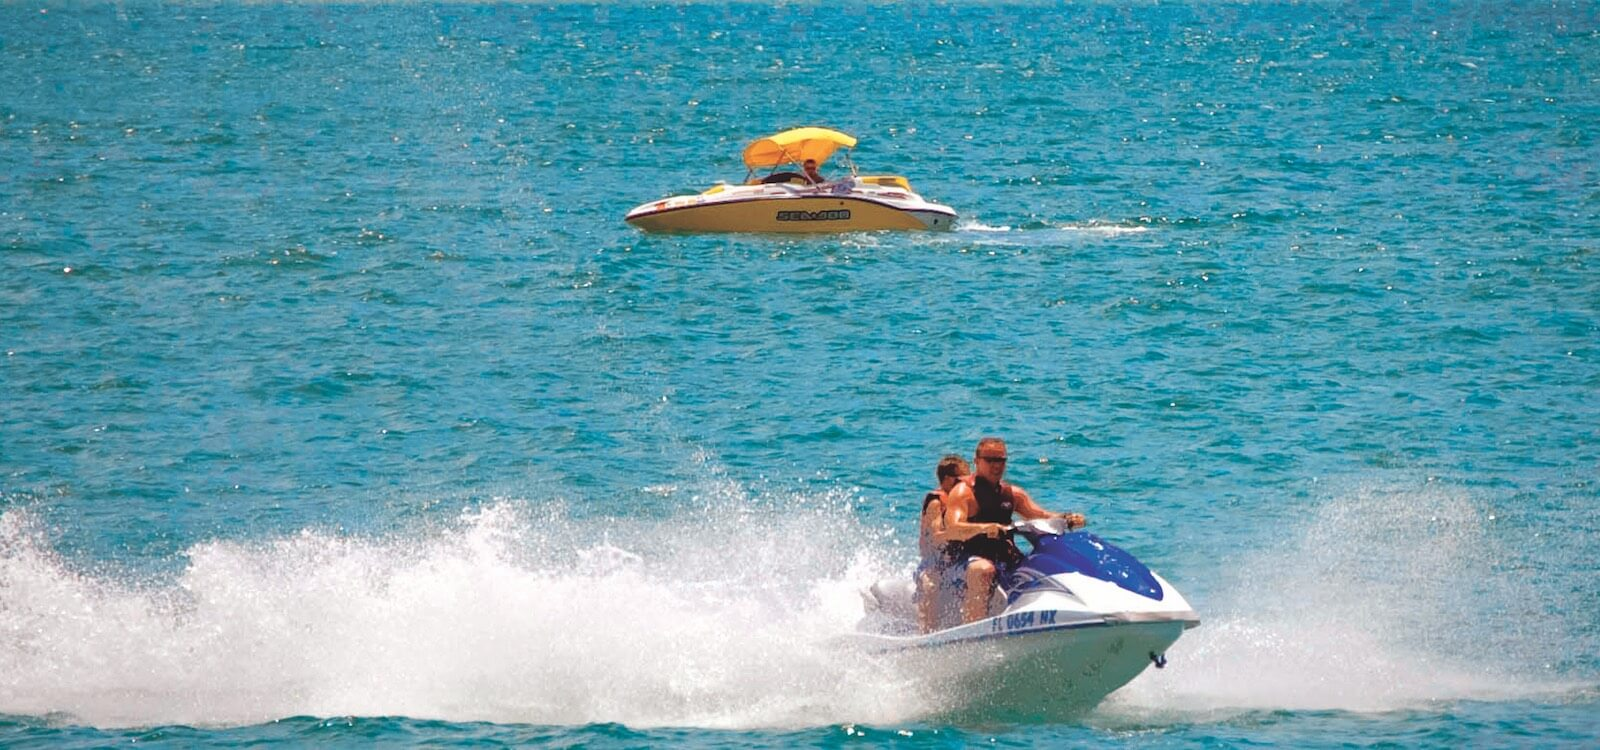 MustDo.com | Jet ski and WaveRunner tours and rentals in Naples and Marco Island, Florida.